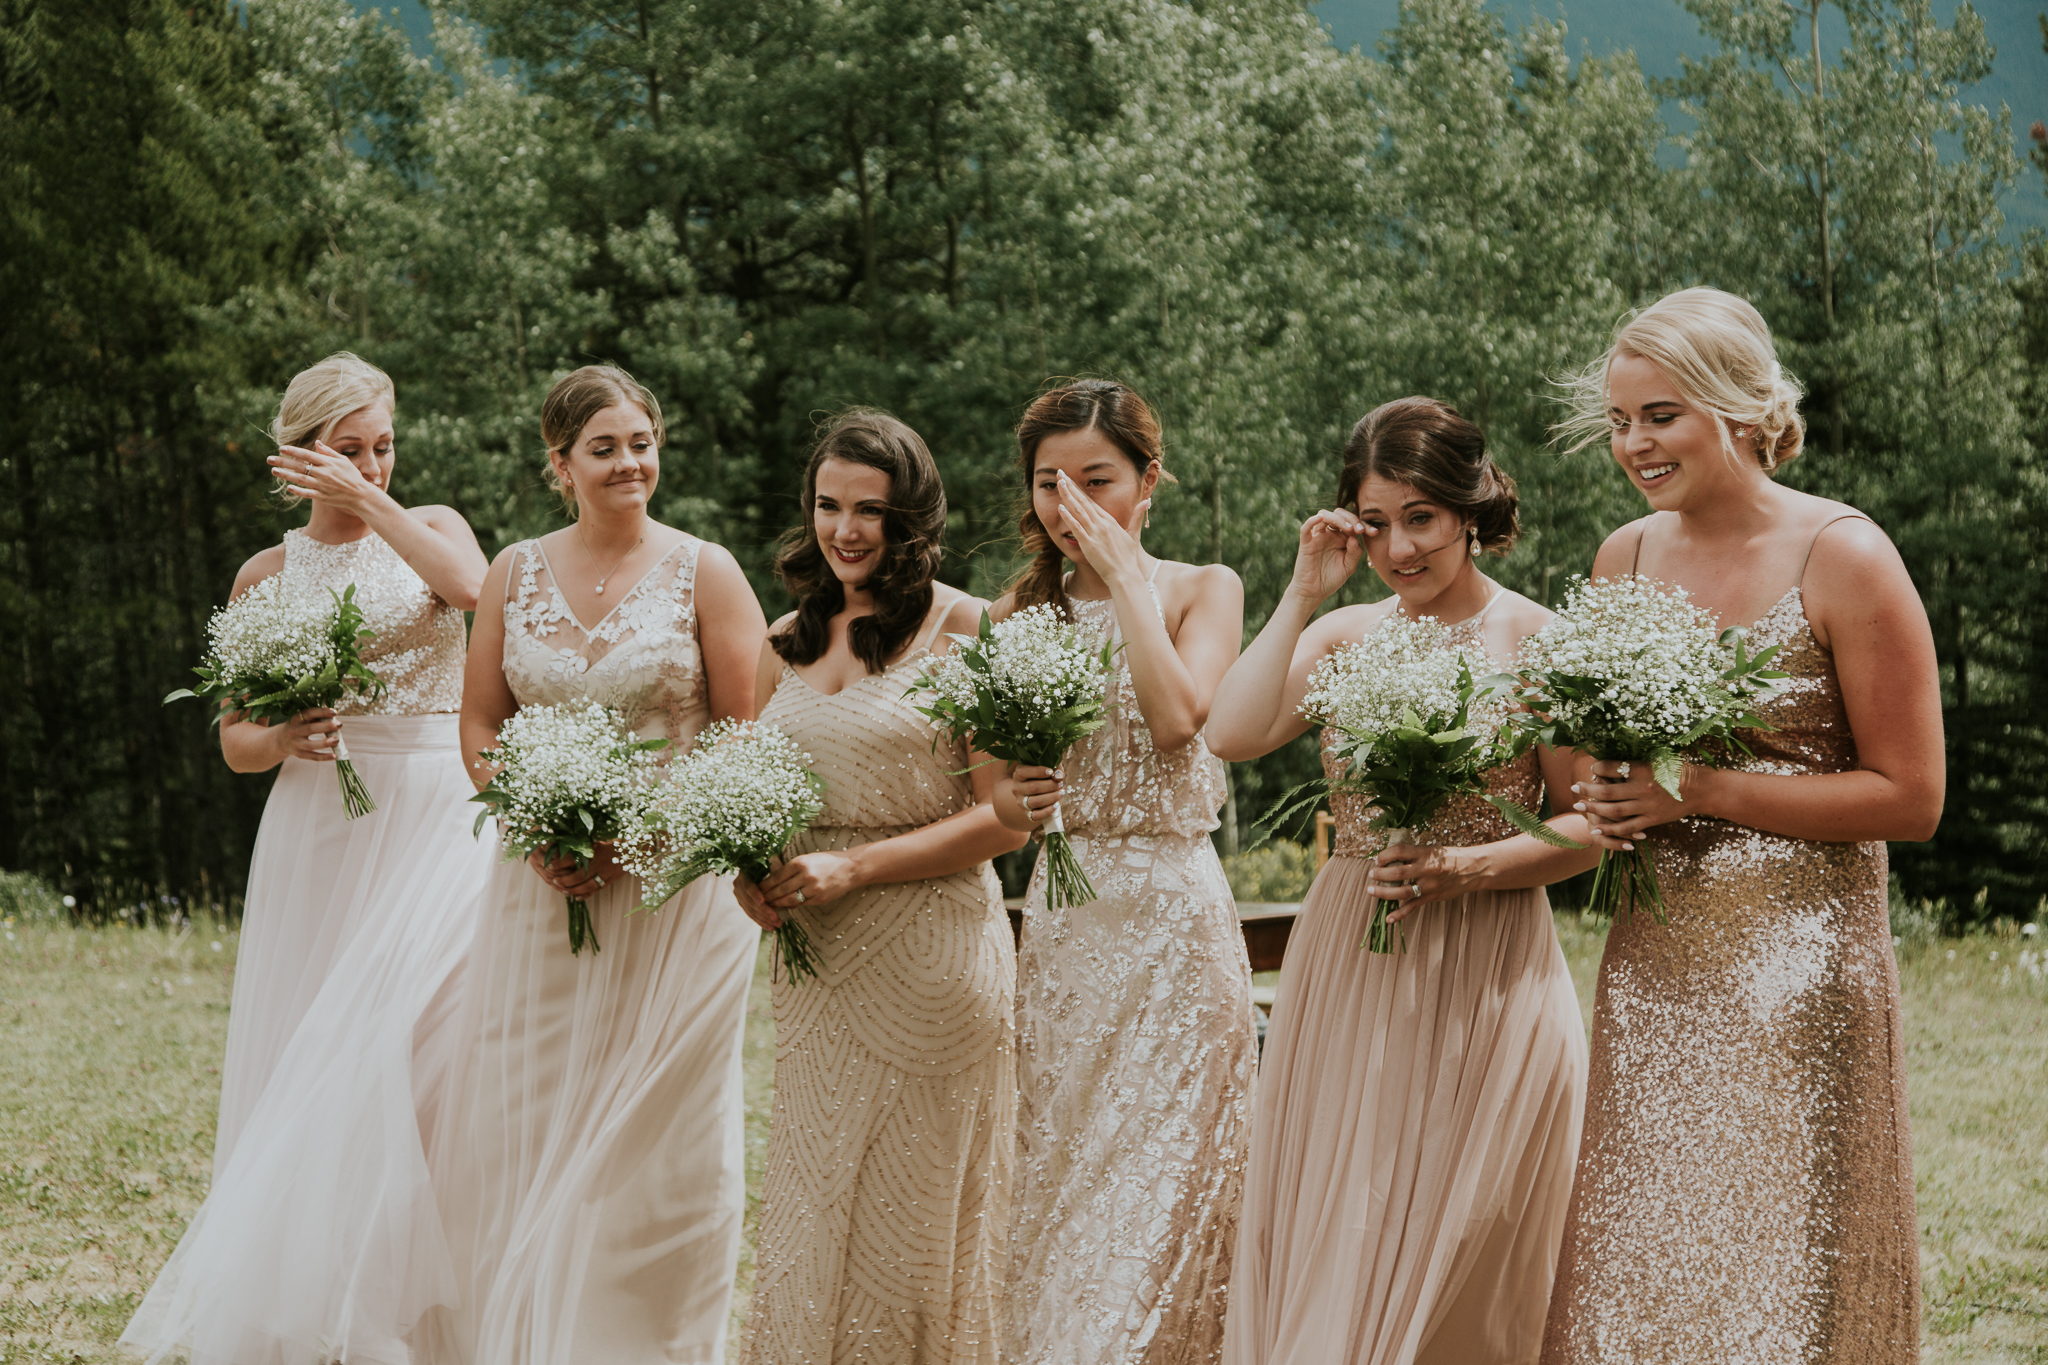 Bridesmaids wiping tears away during emotional weddingat Delta Kananaskis